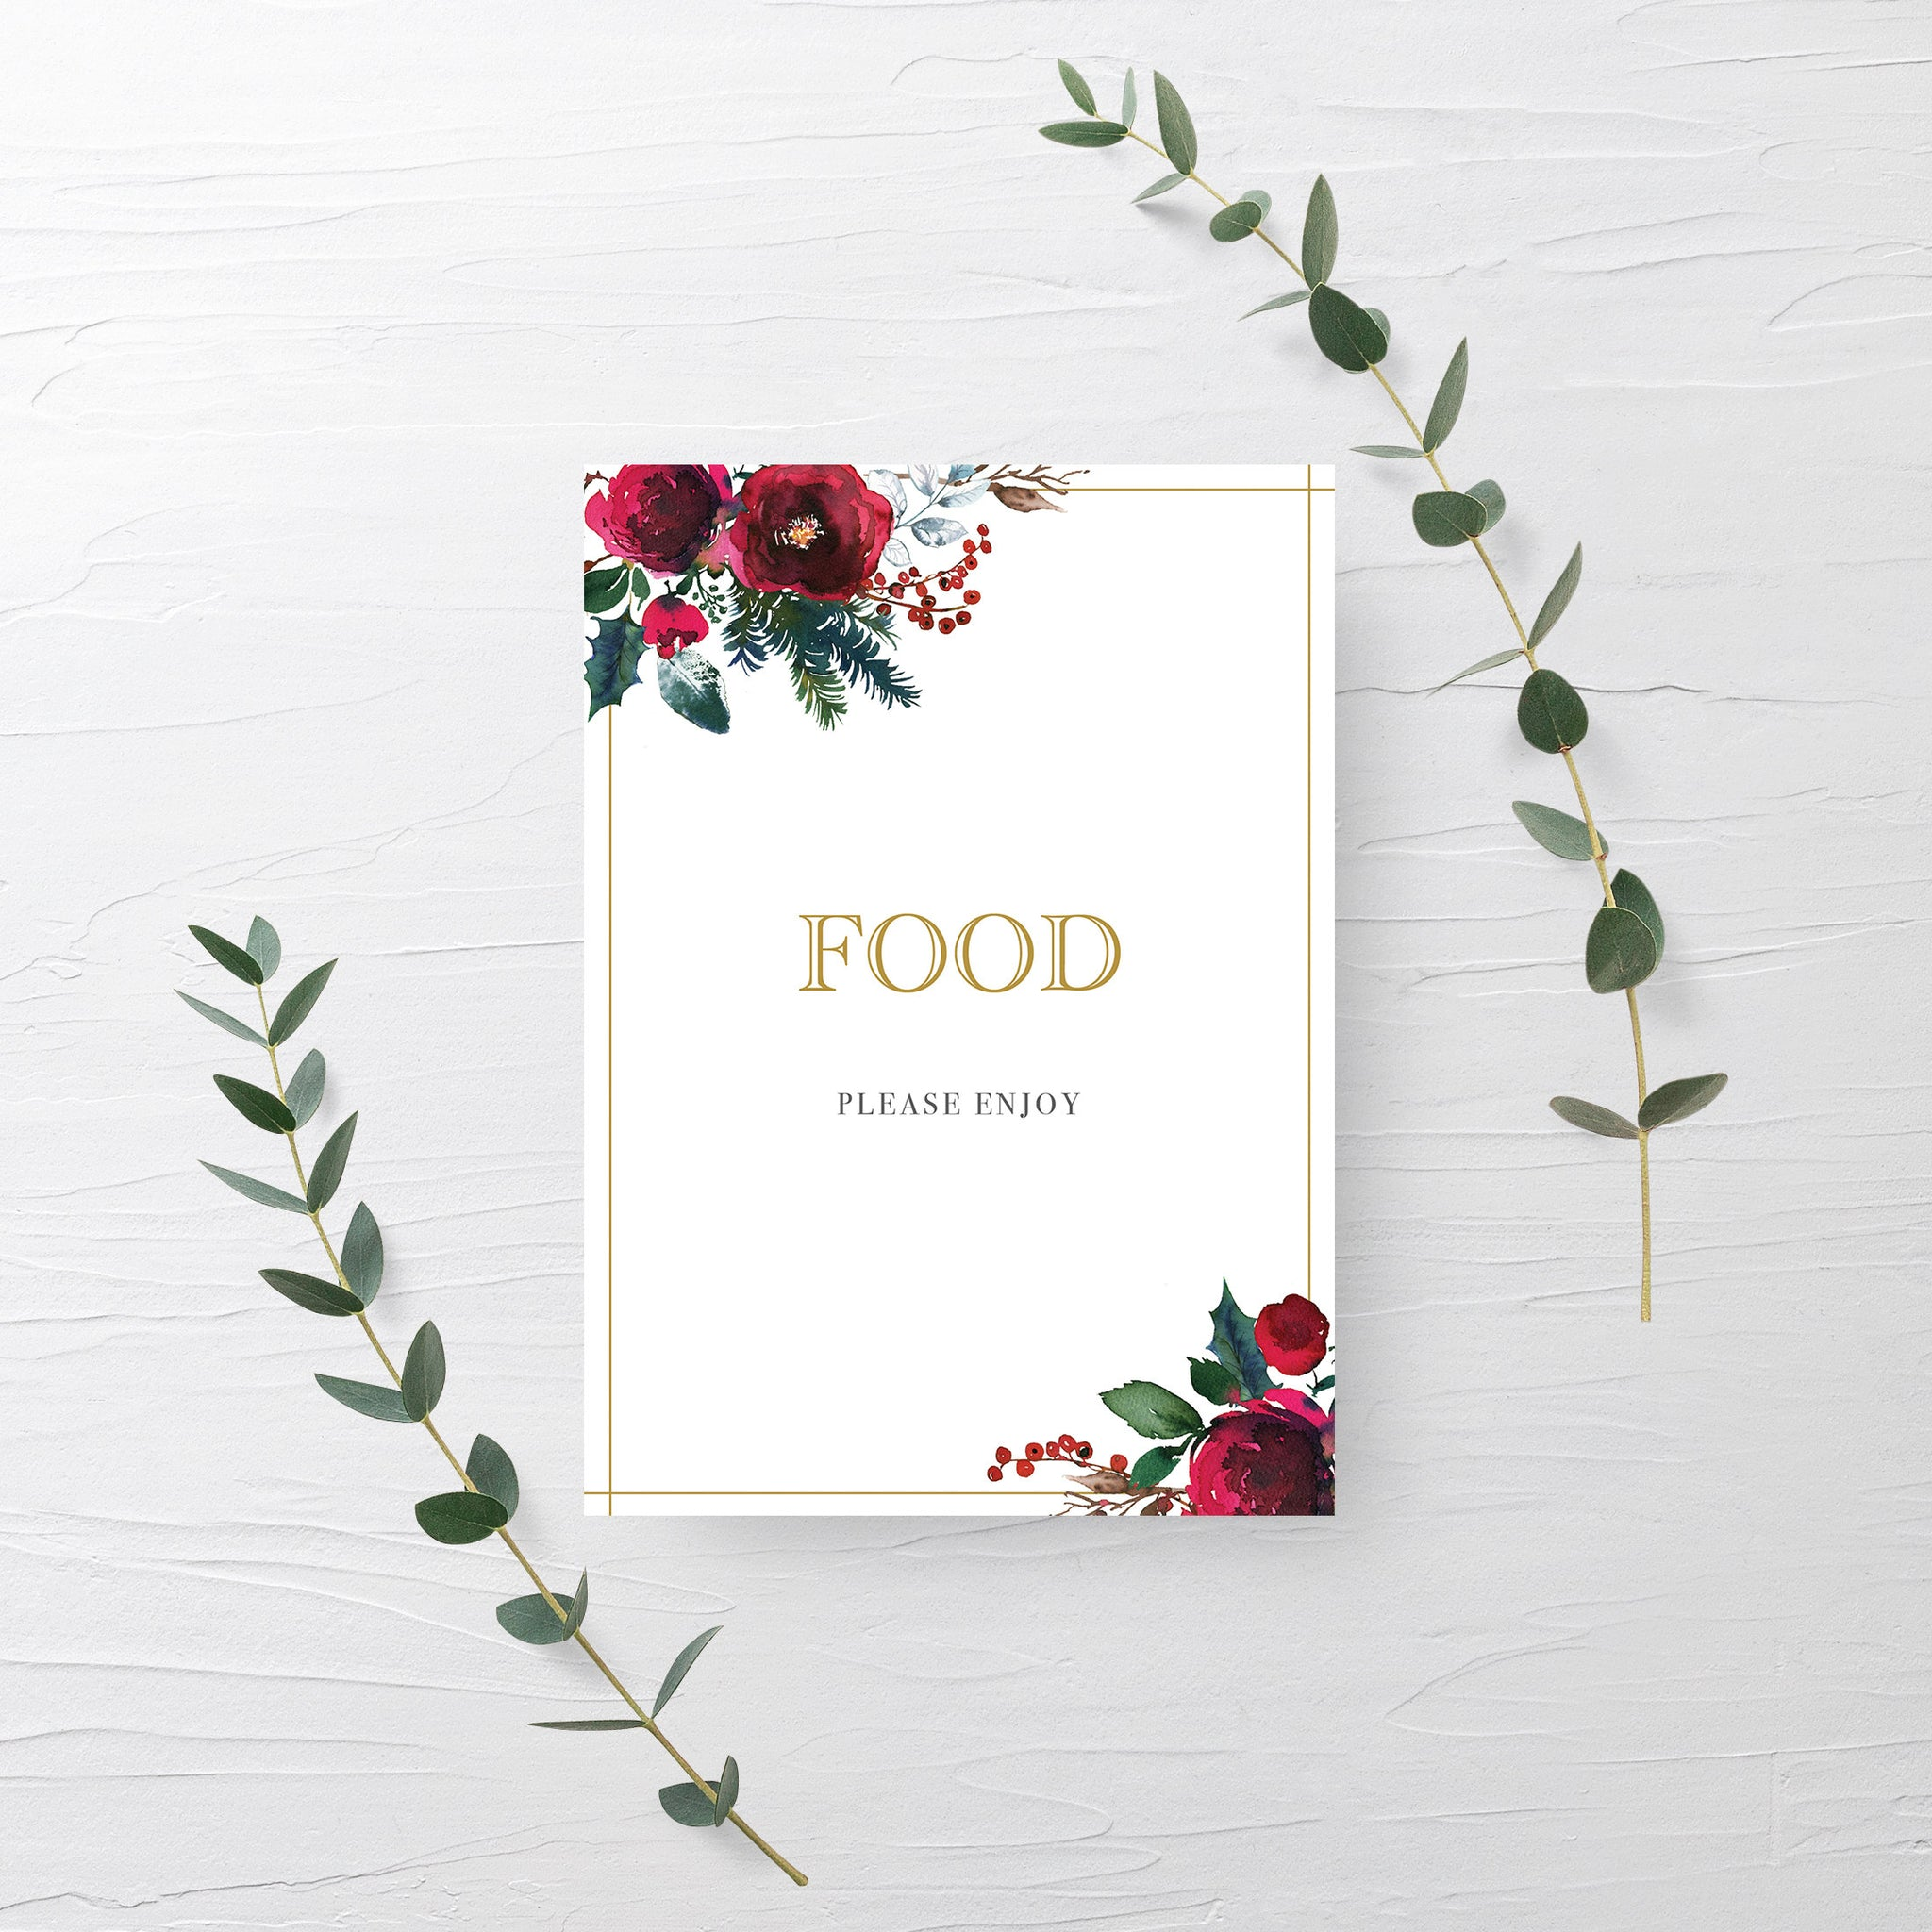 Christmas Party Food Sign Printable, Christmas Bridal Shower Sign, Holiday Party Printable Decorations, INSTANT DOWNLOAD - CG100